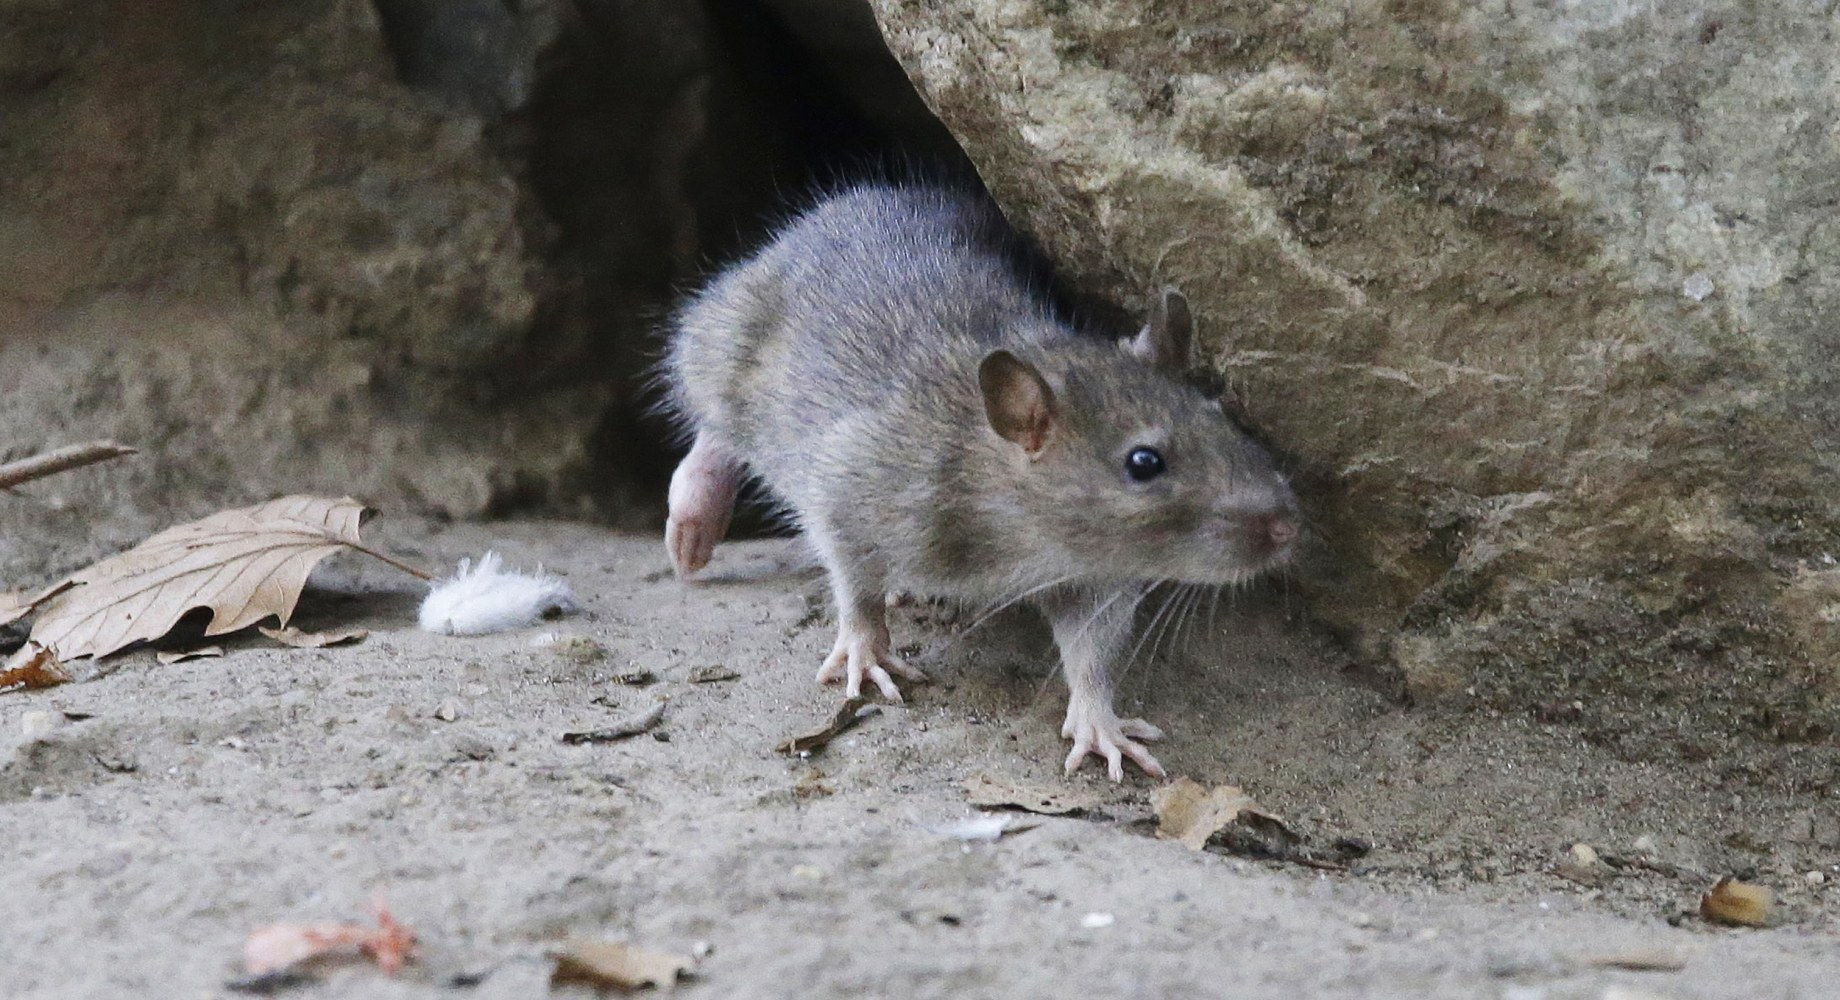 Leptospirosis: New York Rat Pee Disease Kills 1, 2 Others Ill